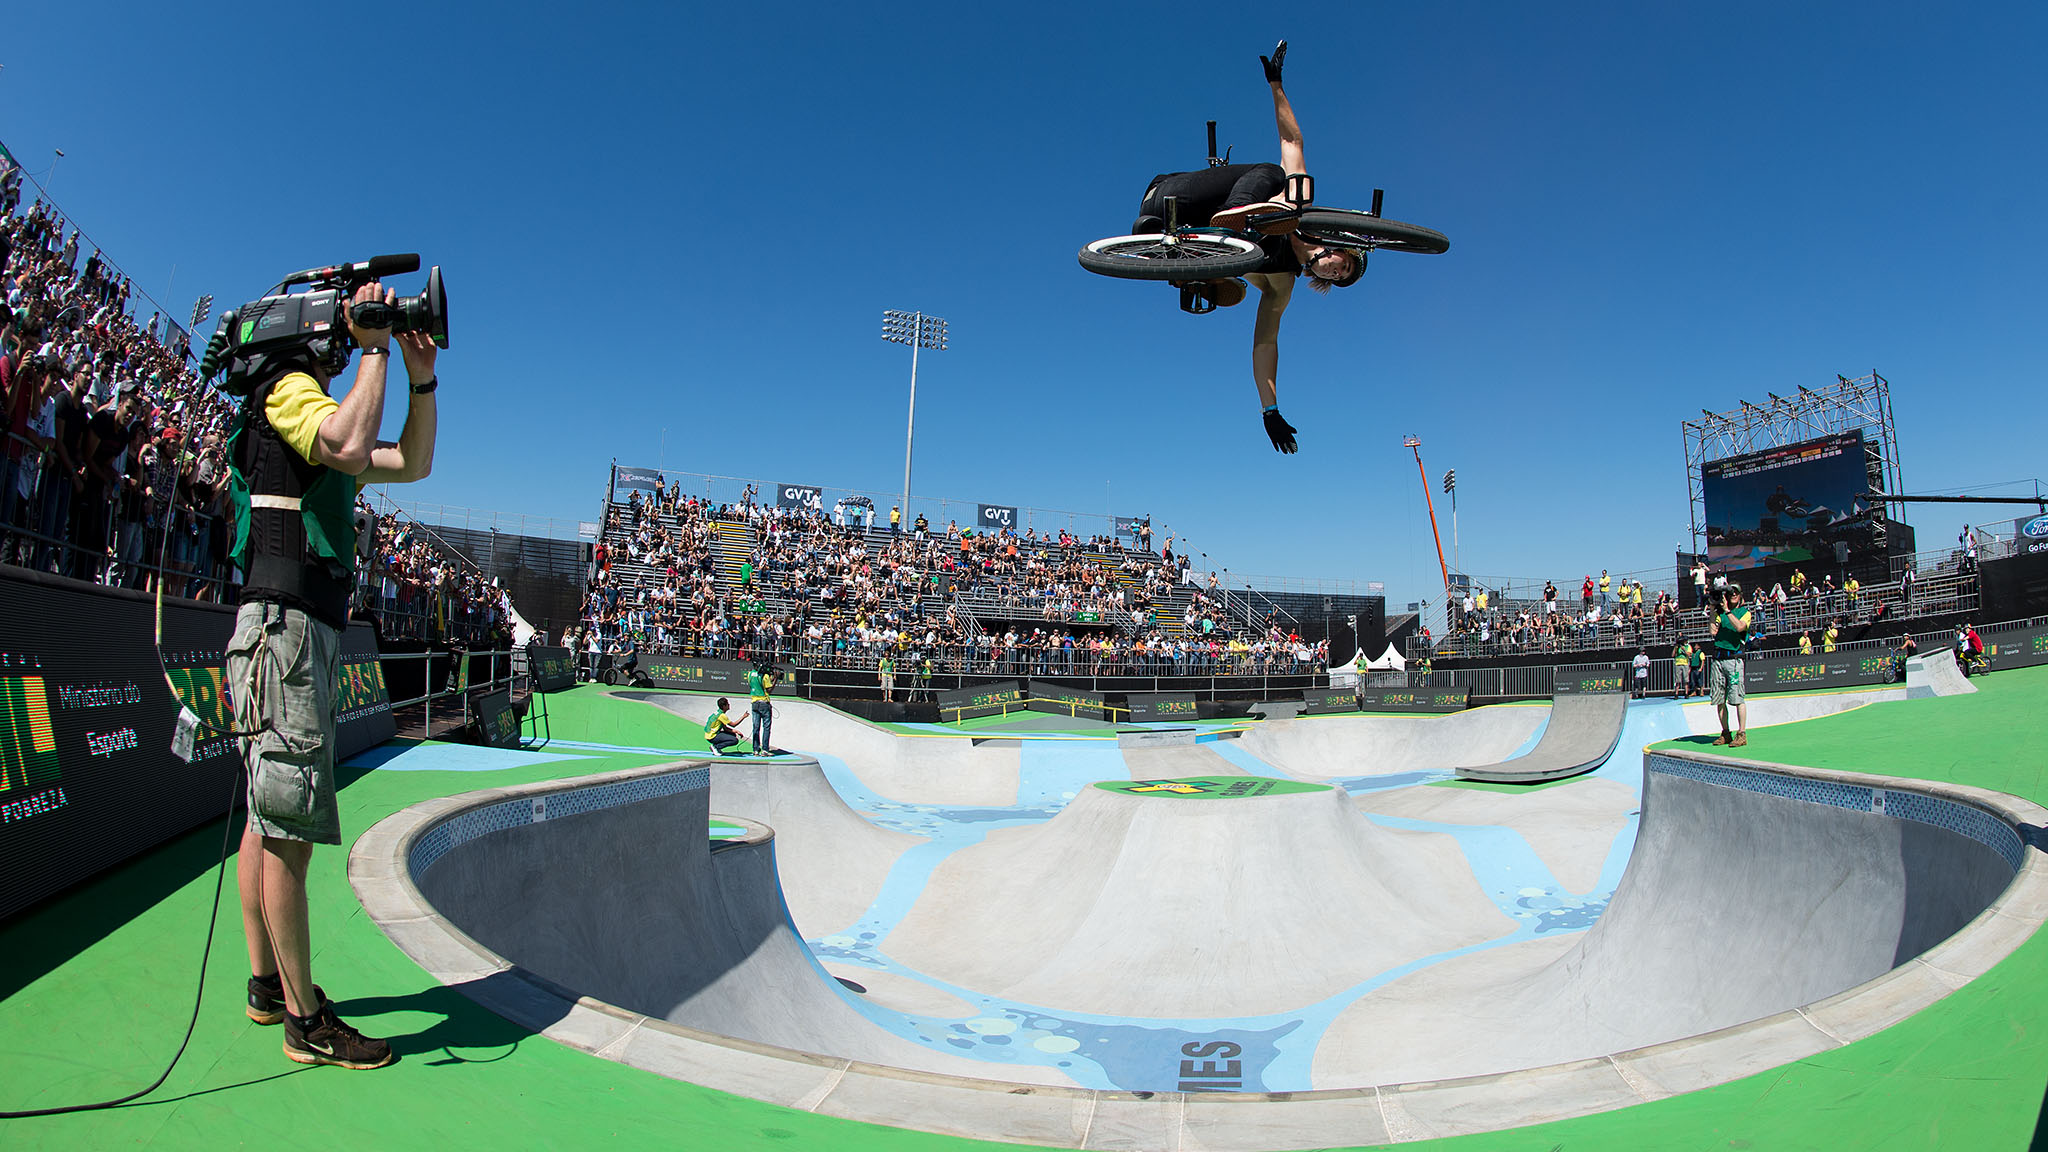 Haro BMX pro Pat Casey traveled to X Games Foz to compete in BMX Park. Between technical variations and burly airs such as this no-hander in the deep bowl, Casey was able to achieve a silver medal in BMX Park at X Games Foz, his best X Games finish to date.